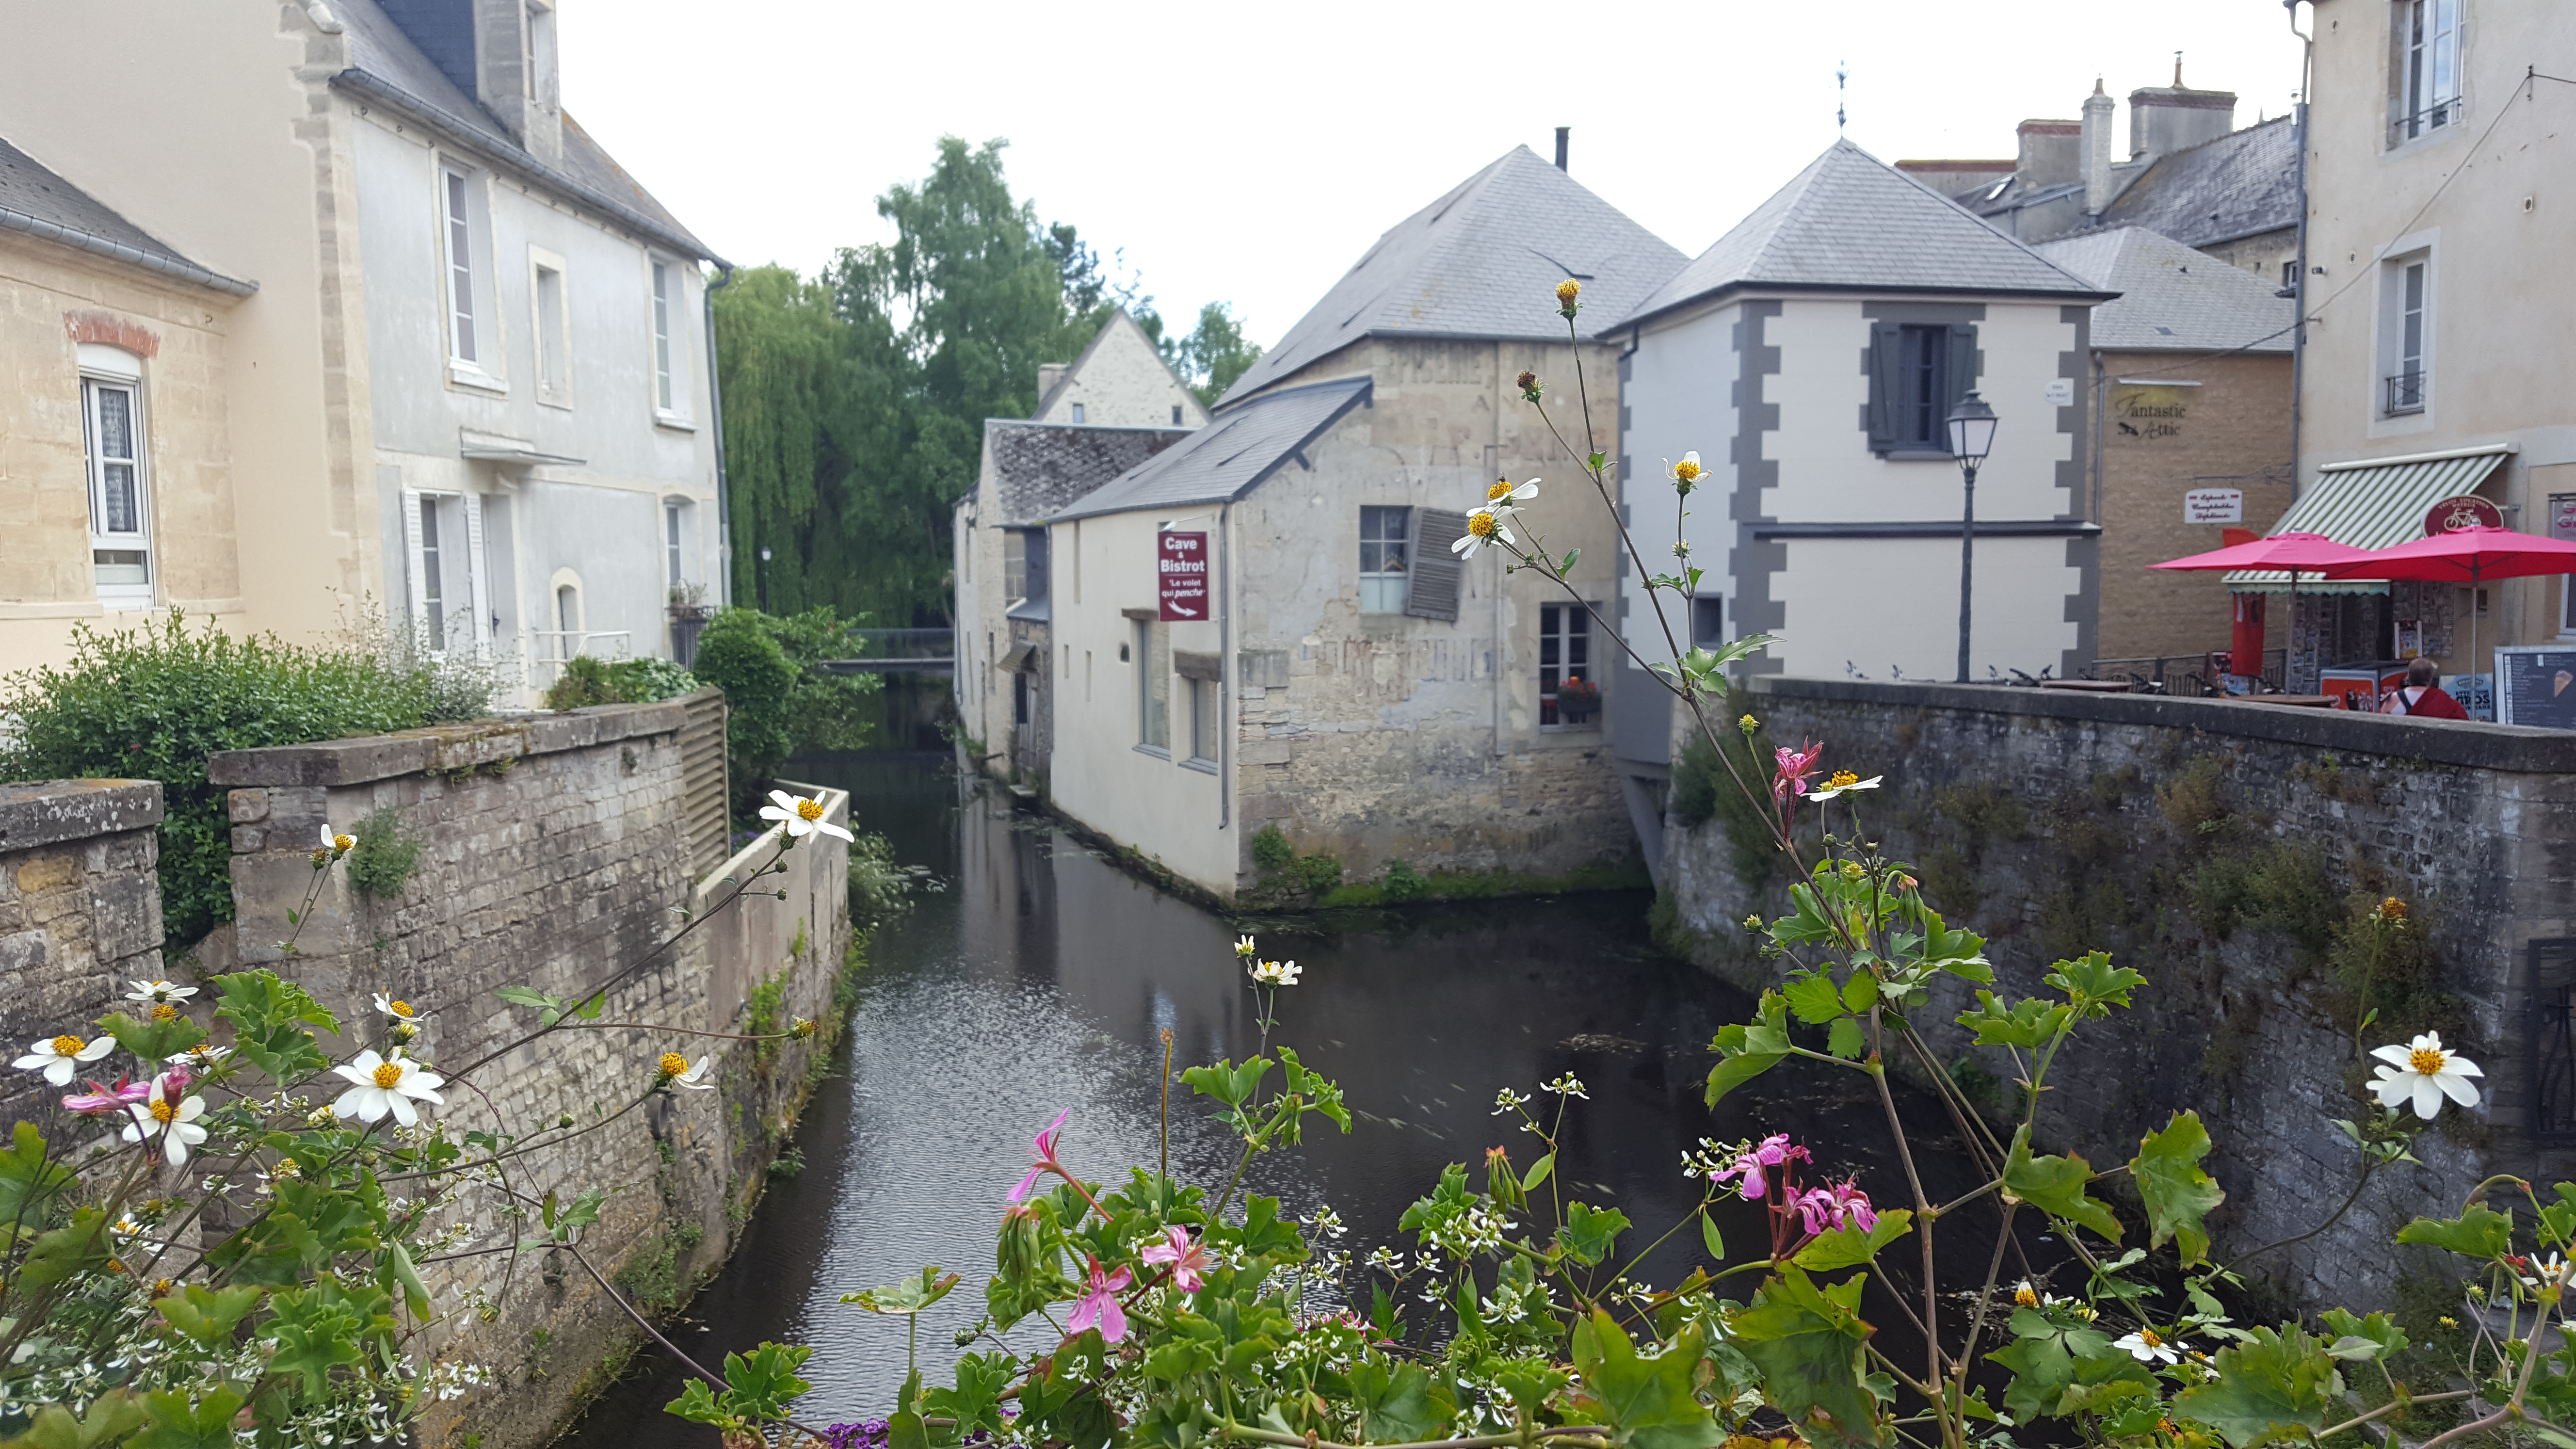 Store Banne Qui Penche Bayeux Normandy Wendy Dot Blog